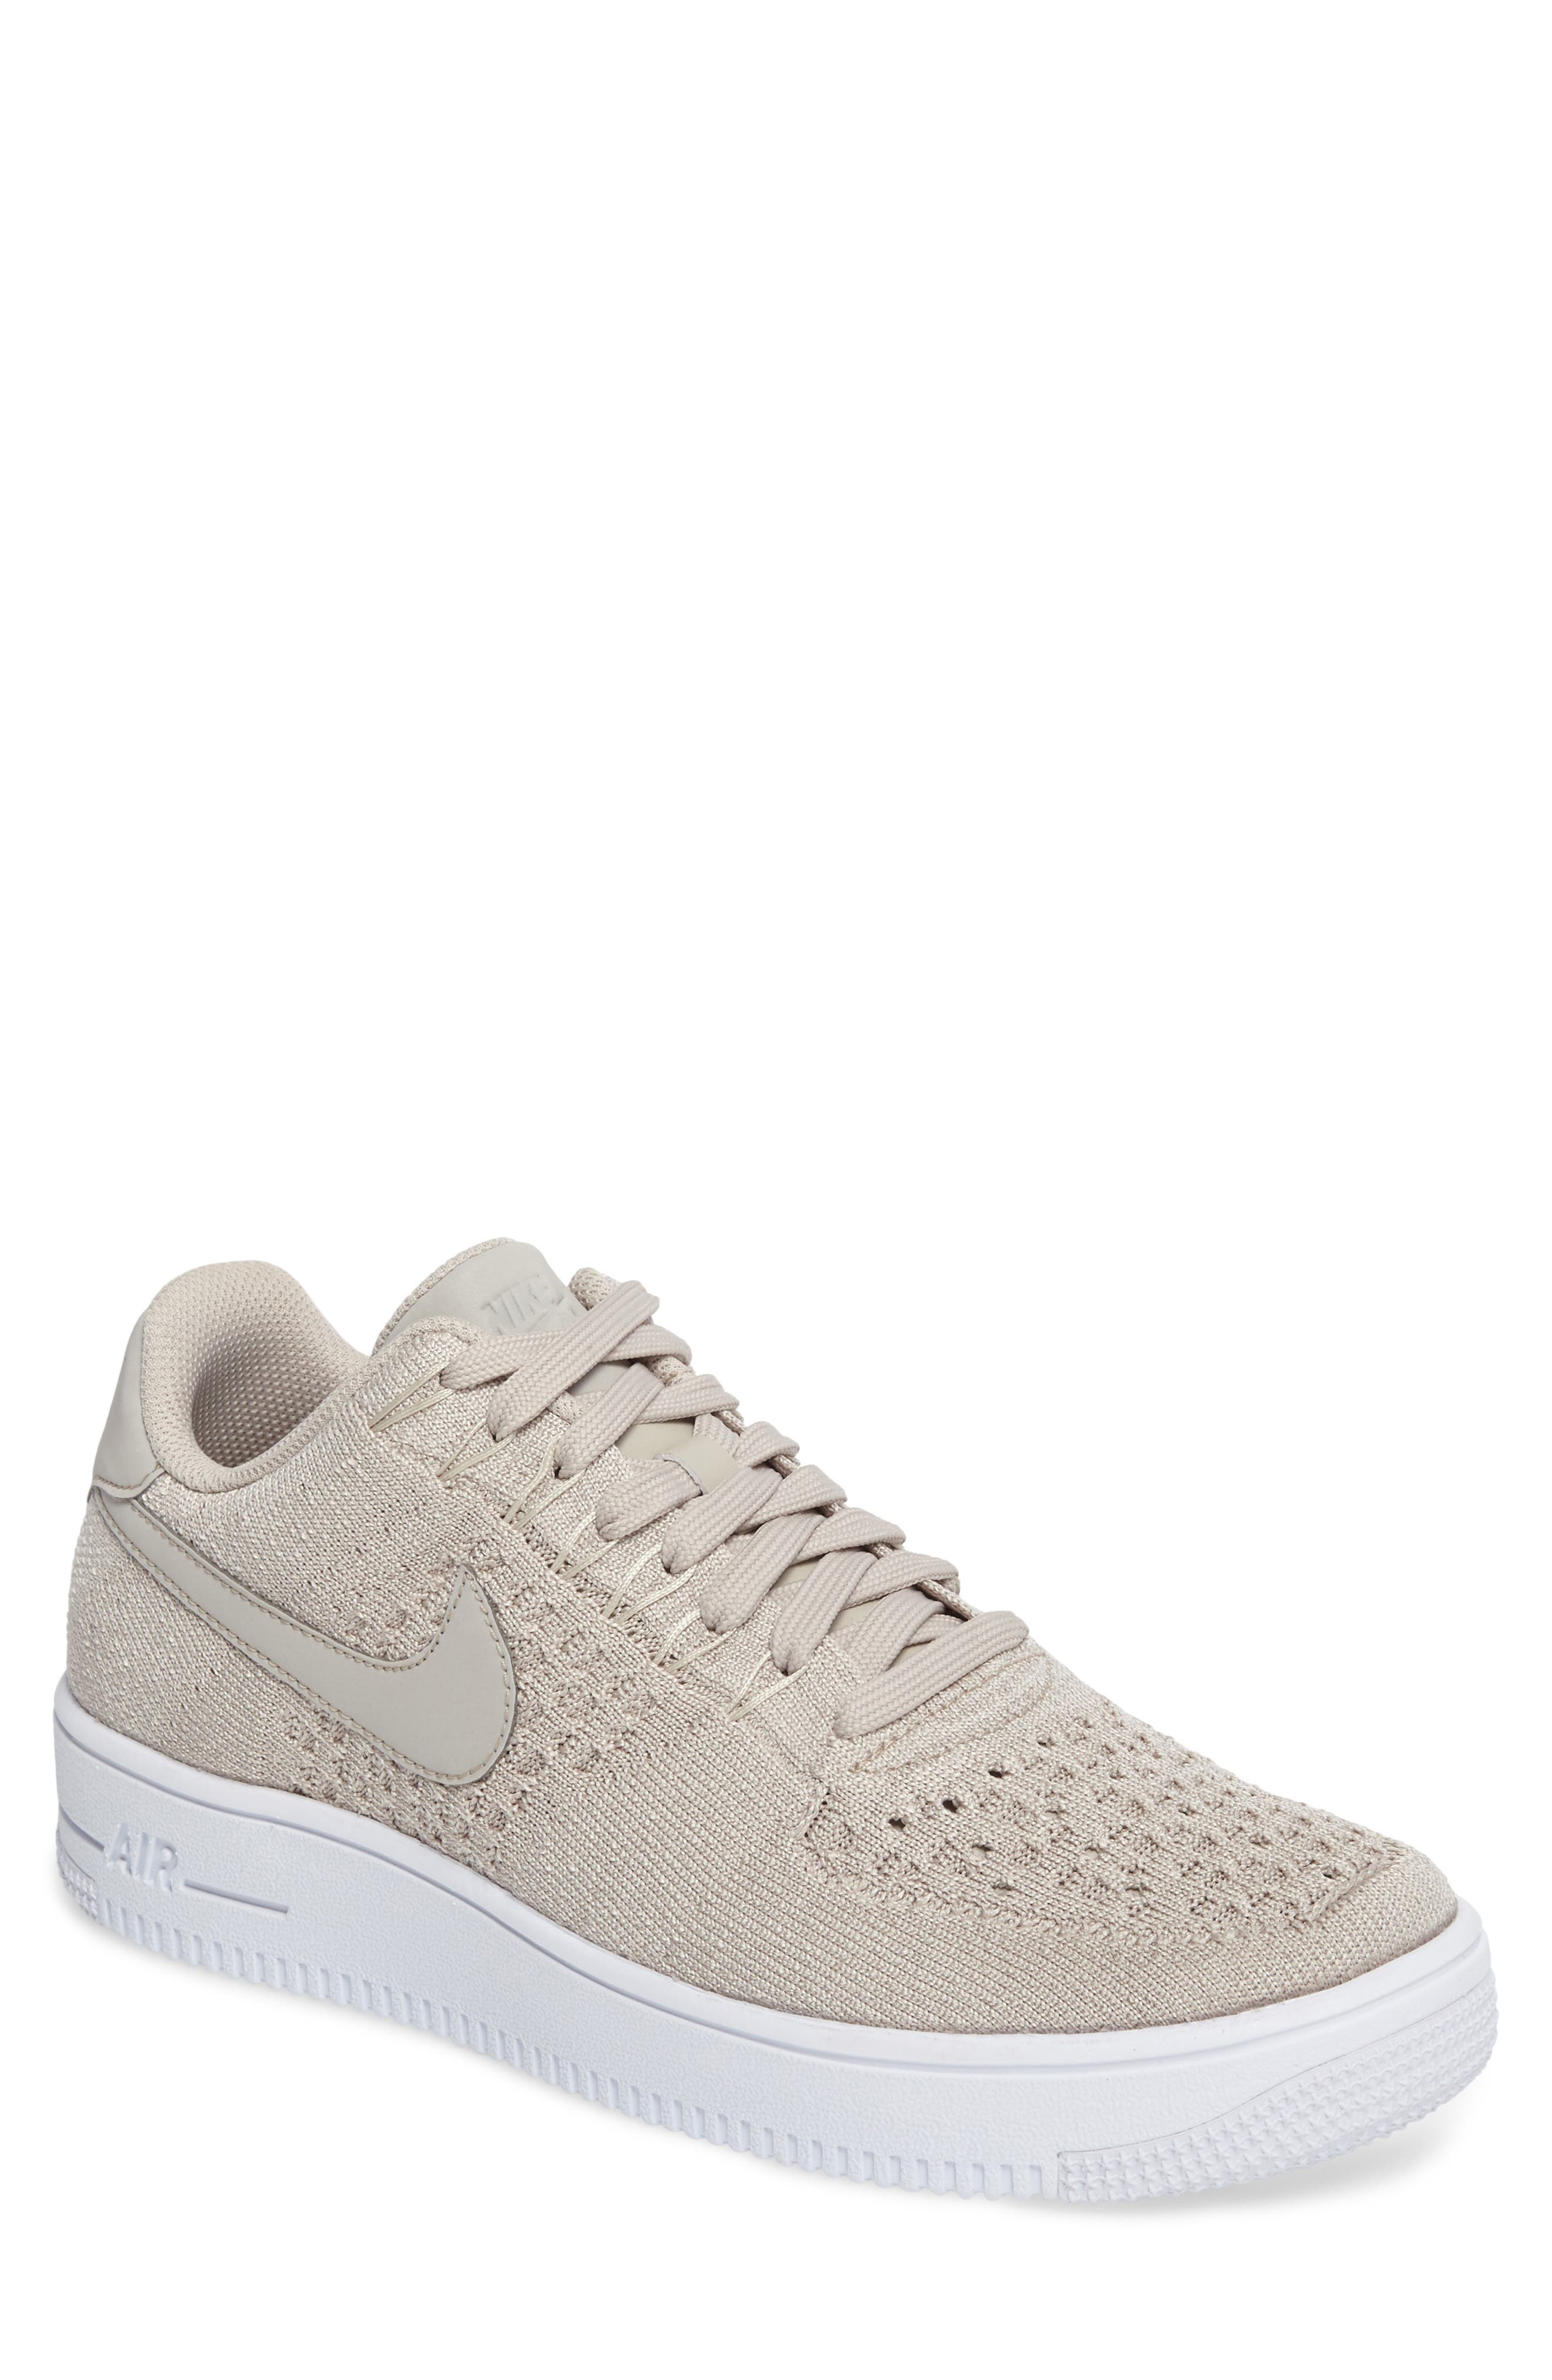 Air Force 1 Ultra Flyknit Low Sneaker,                             Main thumbnail 1, color,                             String/ String/ White